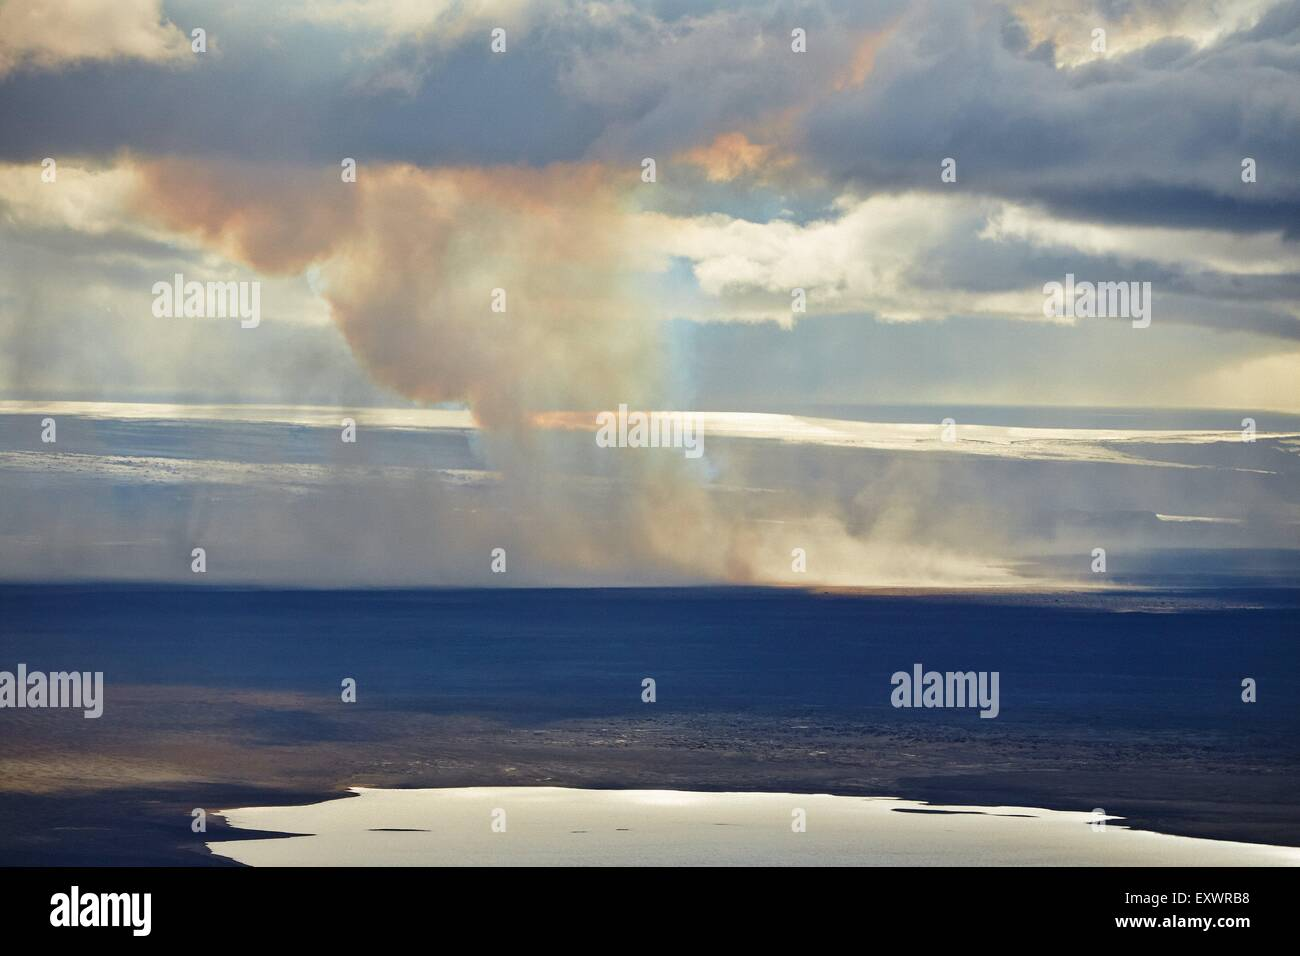 Volcano Bardarbunga, sand storm at lava field Holuhraun at Sept 2nd 2014, Iceland - Stock Image